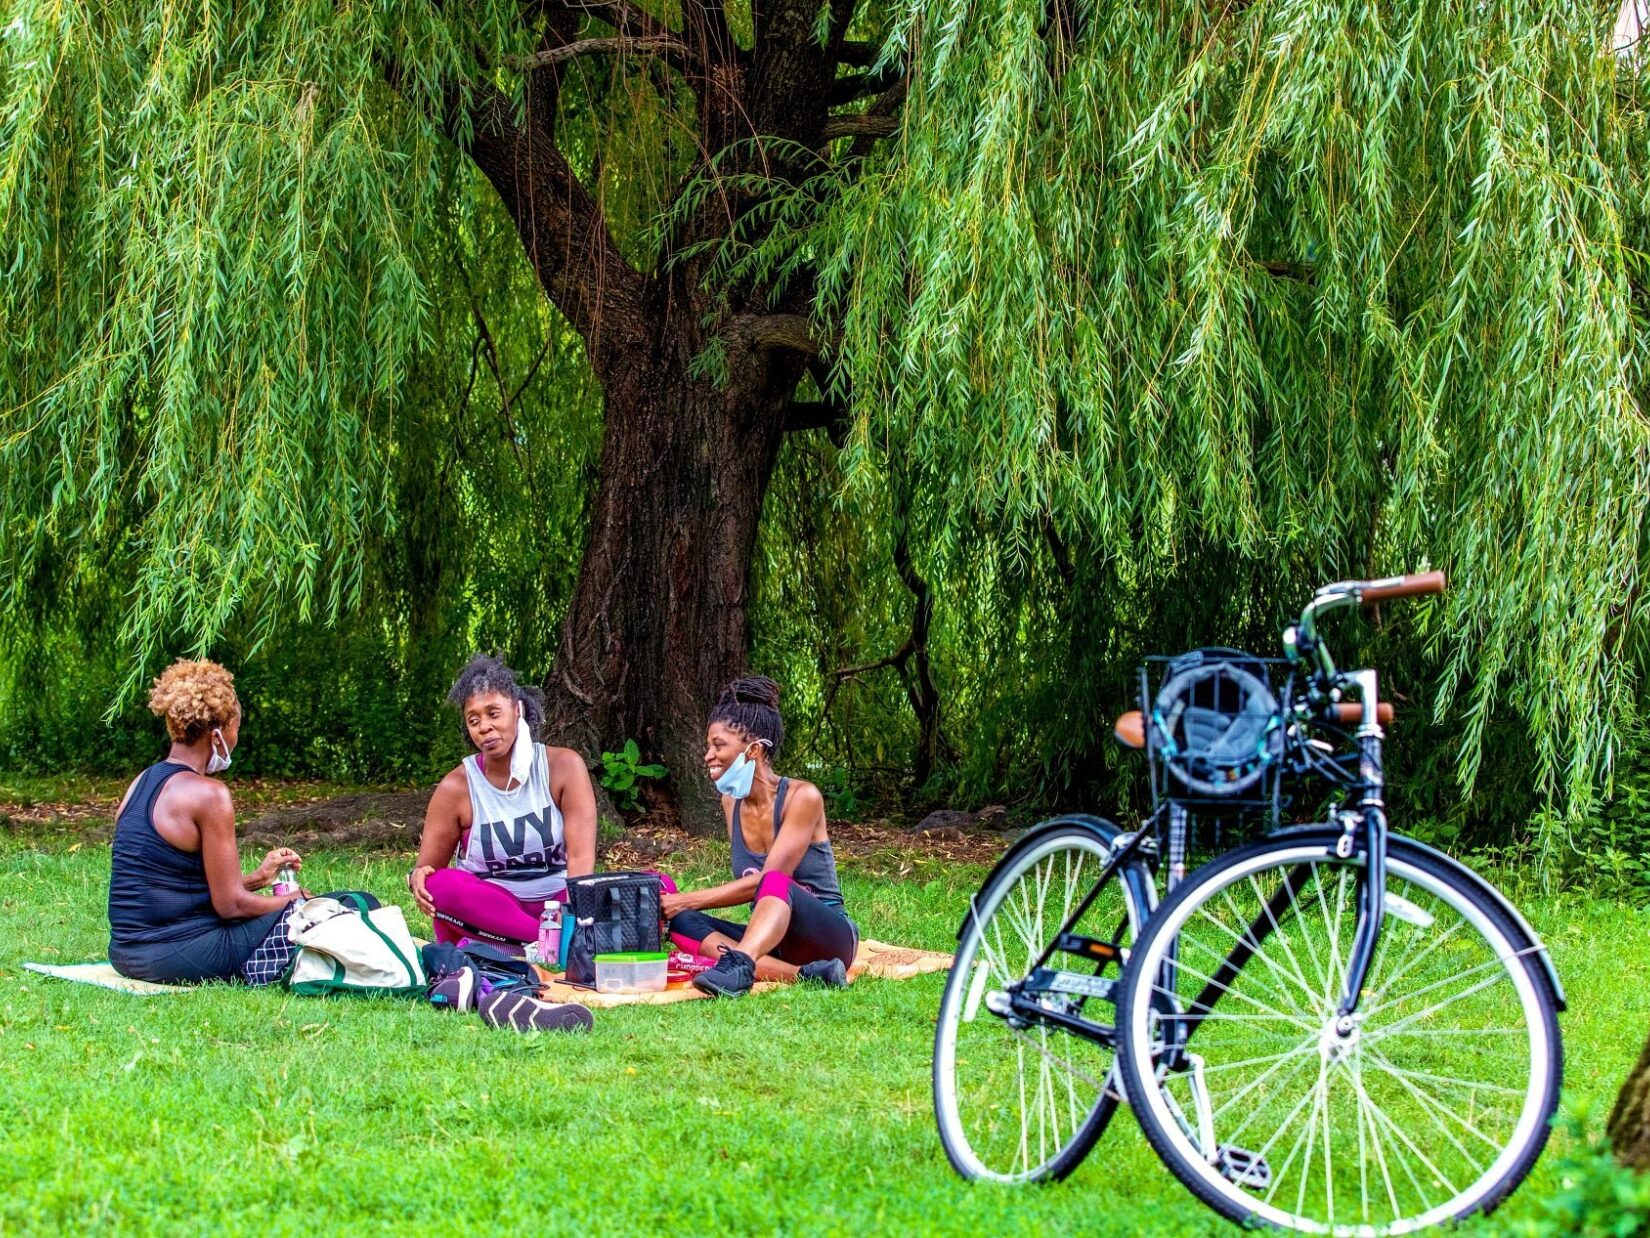 Three women enjoy a picnic beneath a tree, with a bicycle in the foreground.